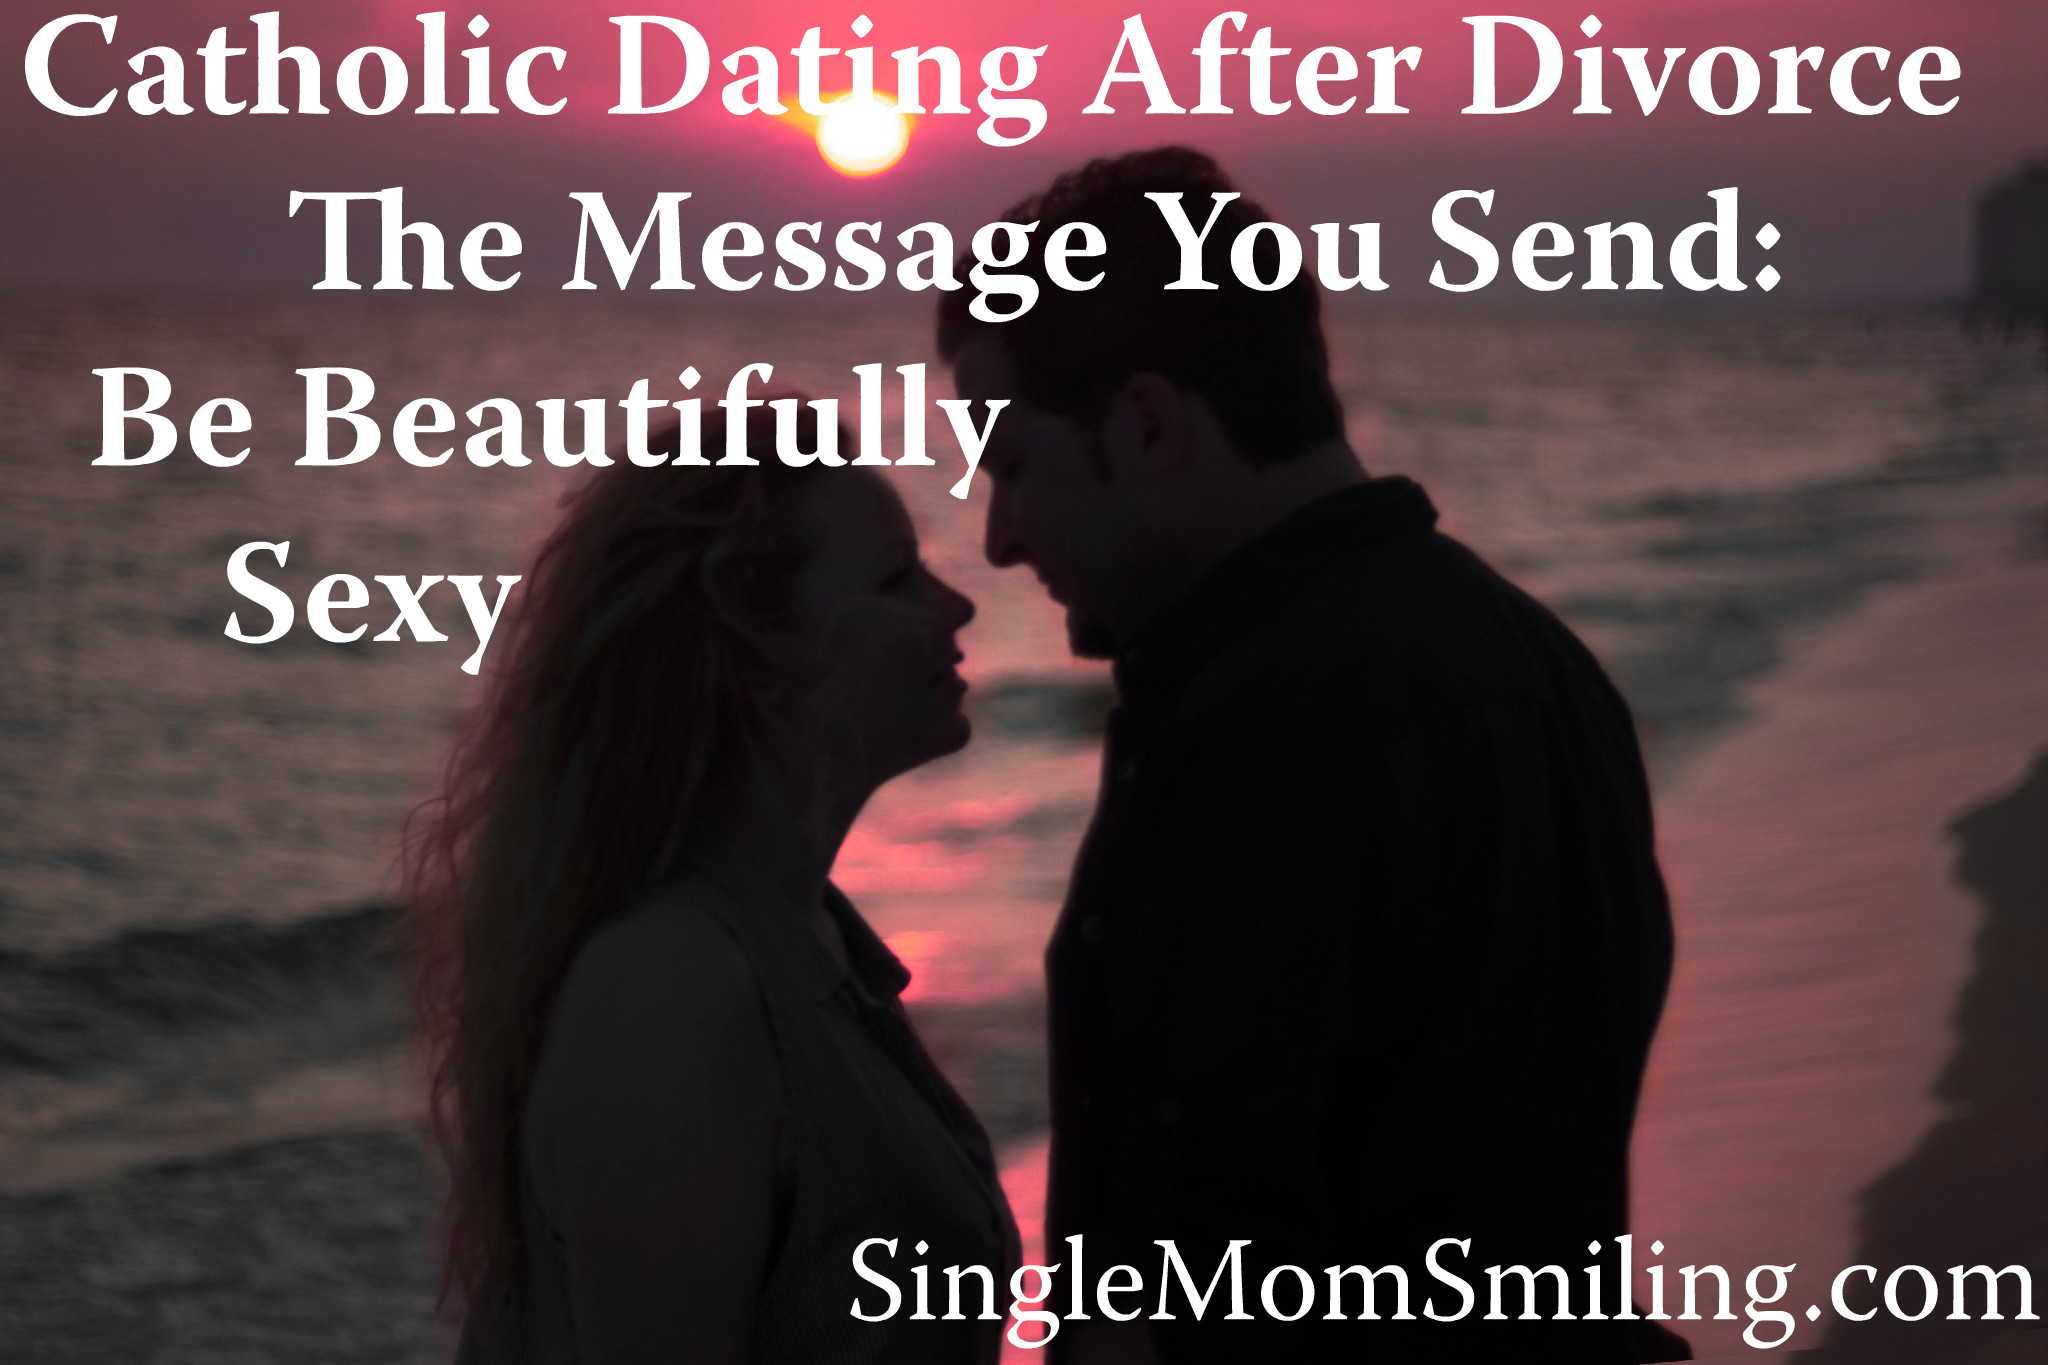 Dating after divorce catholic annulment